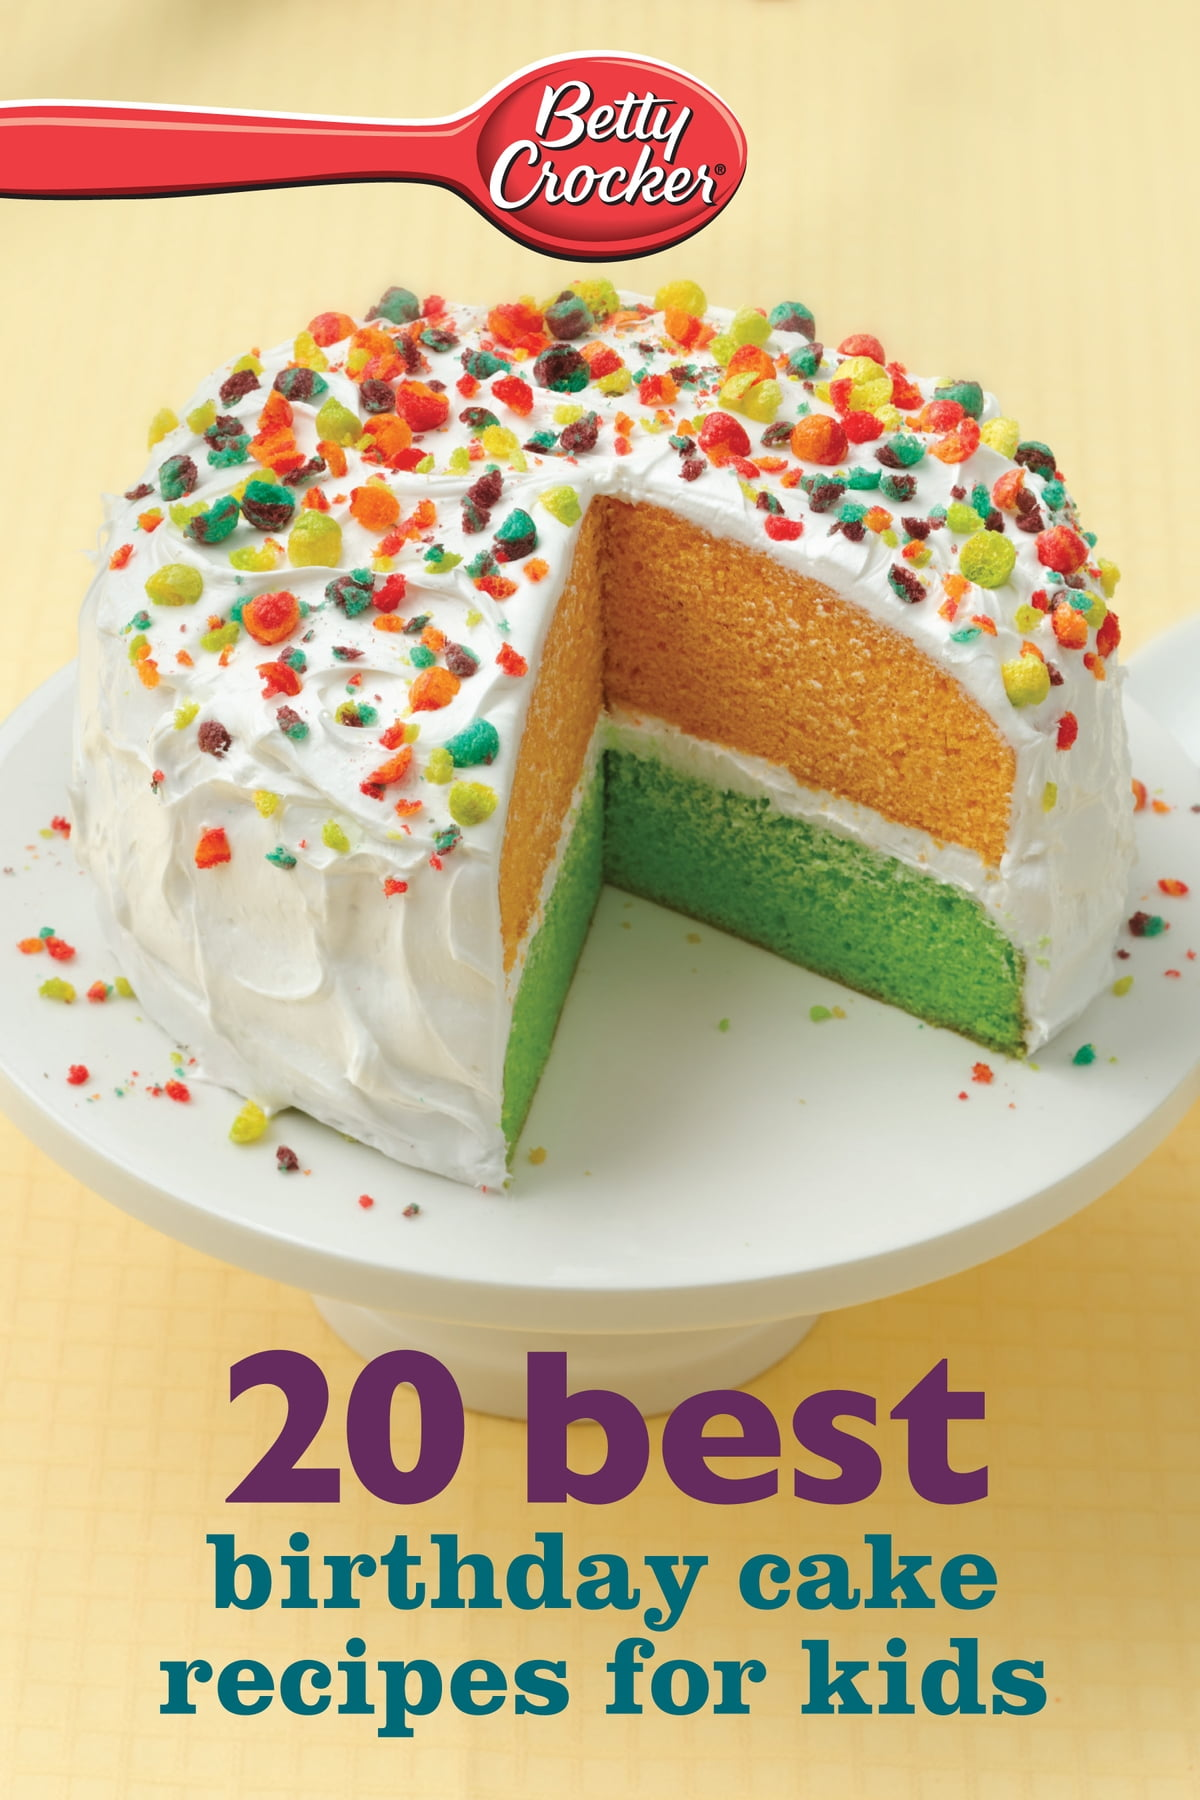 Marvelous Betty Crocker 20 Best Birthday Cakes Recipes For Kids Ebook Door Funny Birthday Cards Online Inifodamsfinfo